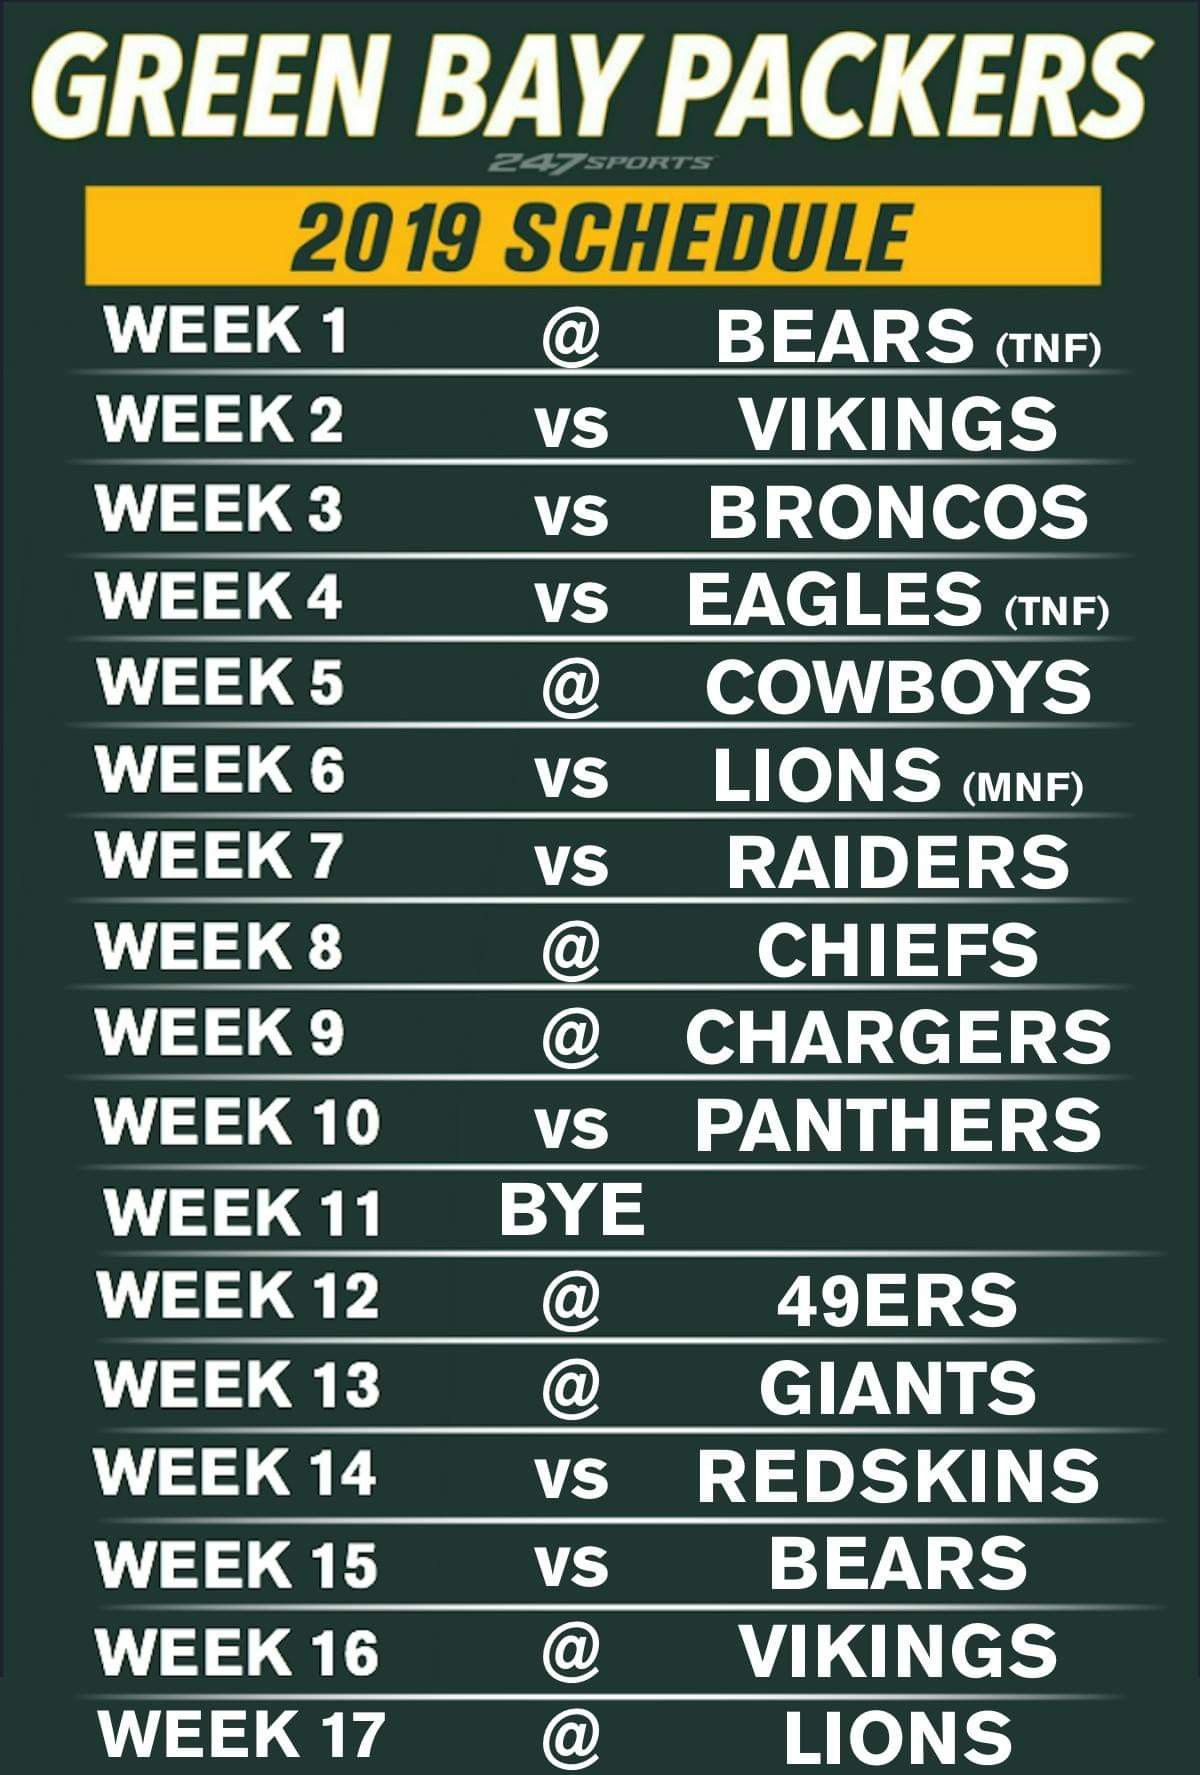 Pin By Kathy Marez On Green Bay Packers With Images Green Bay Packers Green Bay Packers Schedule